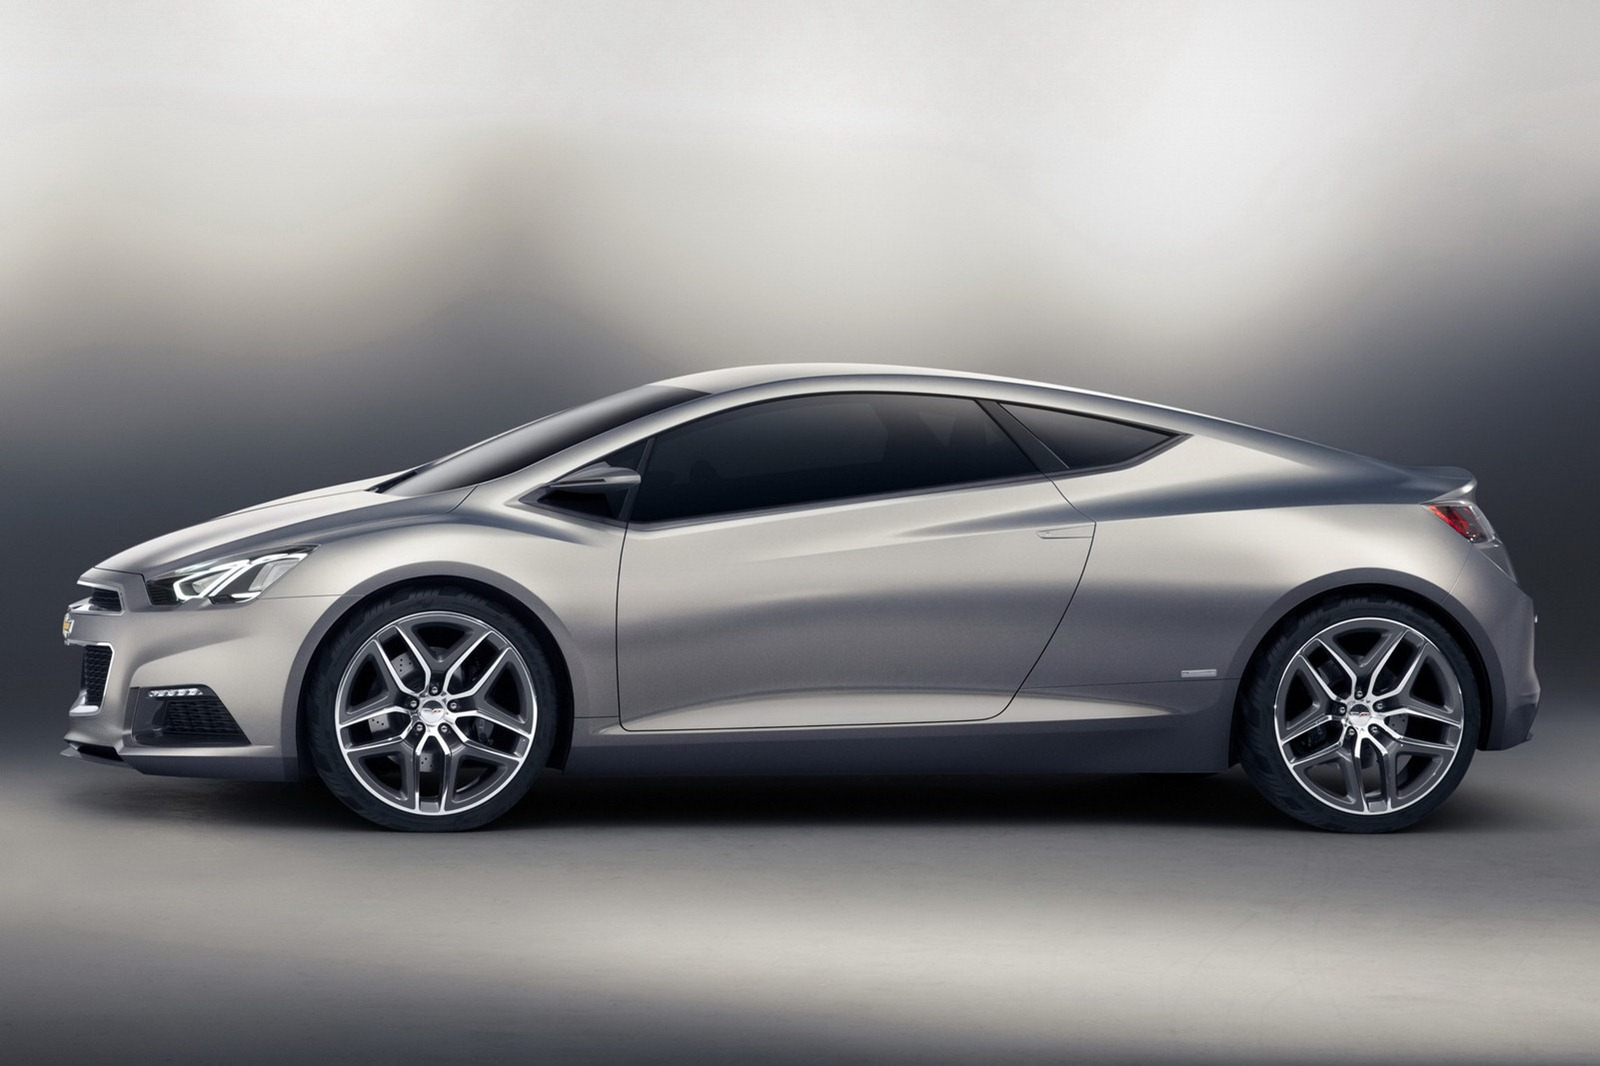 All Chevy chevy concepts : Two new Chevy coupe concepts at Detroit - MX-5 Miata Forum